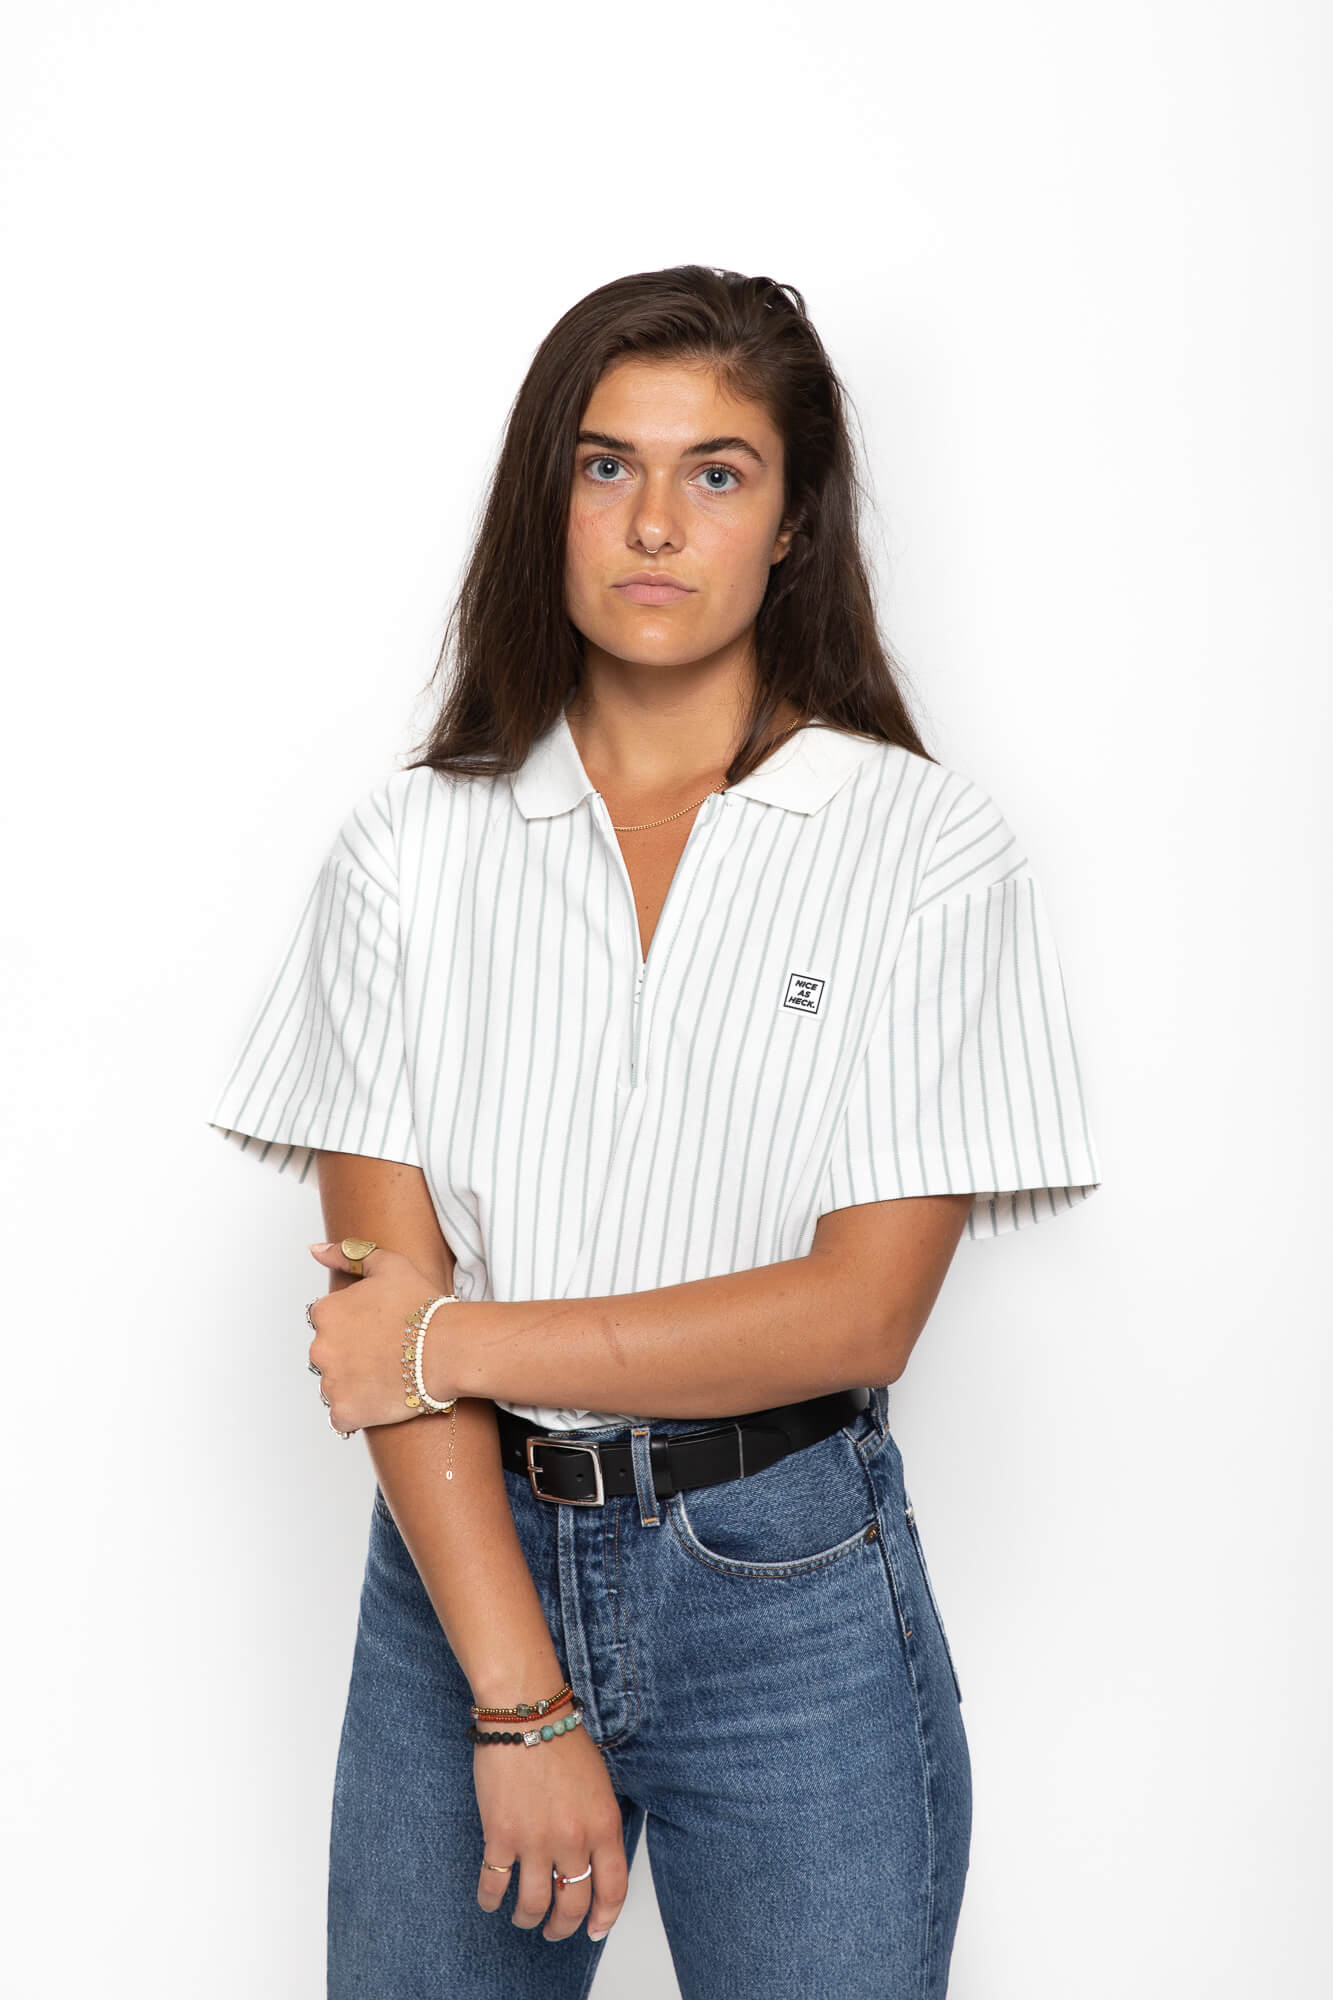 front view of female model holding her arm wearing the d plus polo